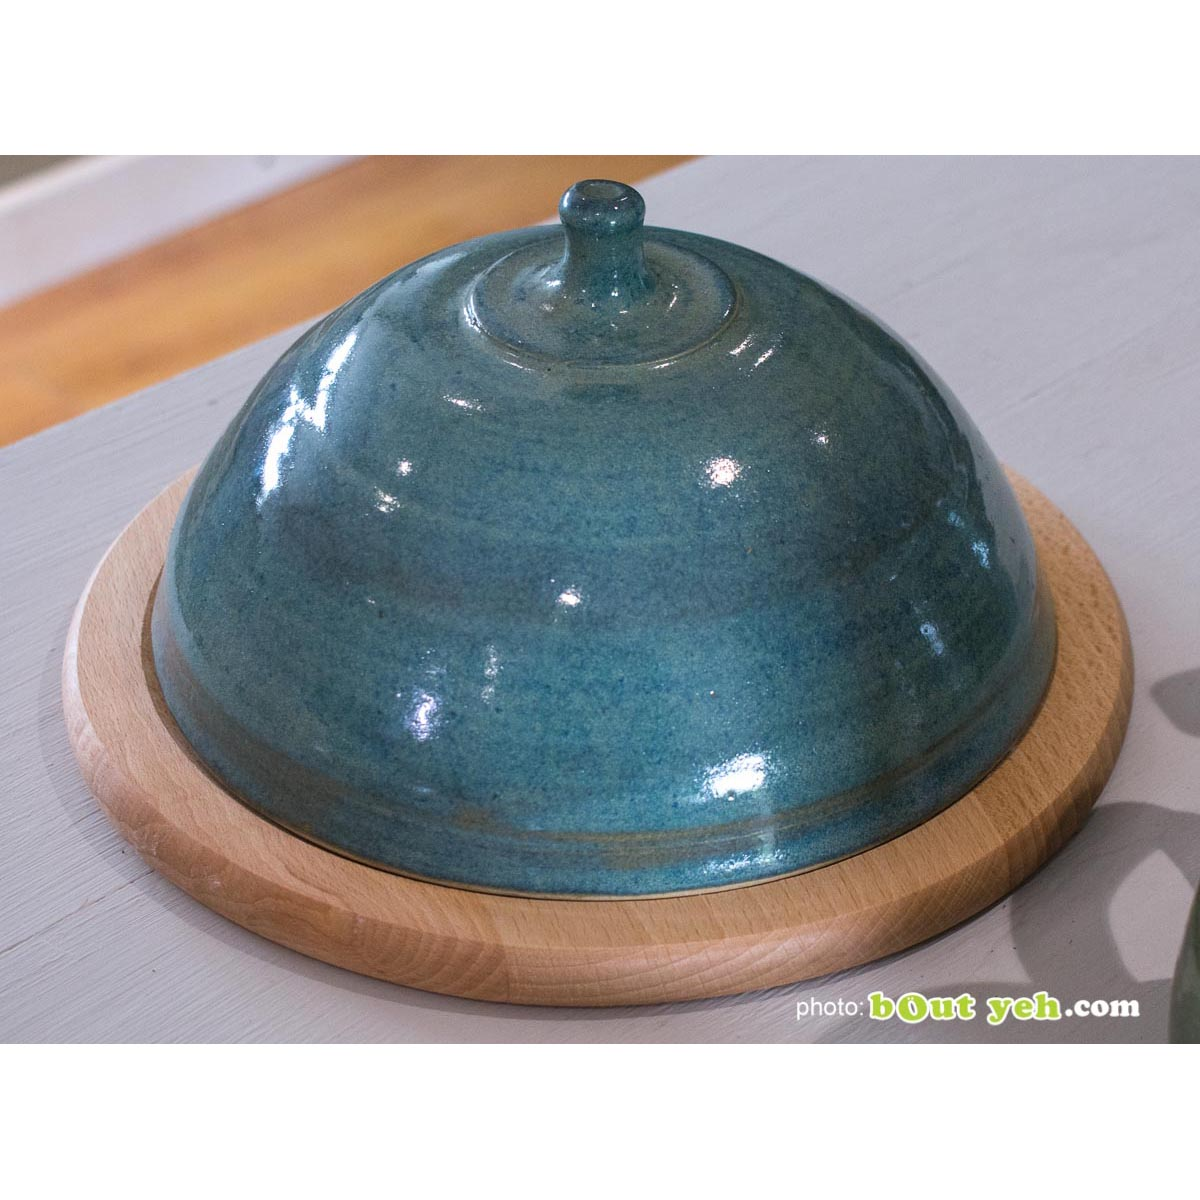 Cheeseboard bell and board - contemporary hand made Irish pottery. Photo 1471